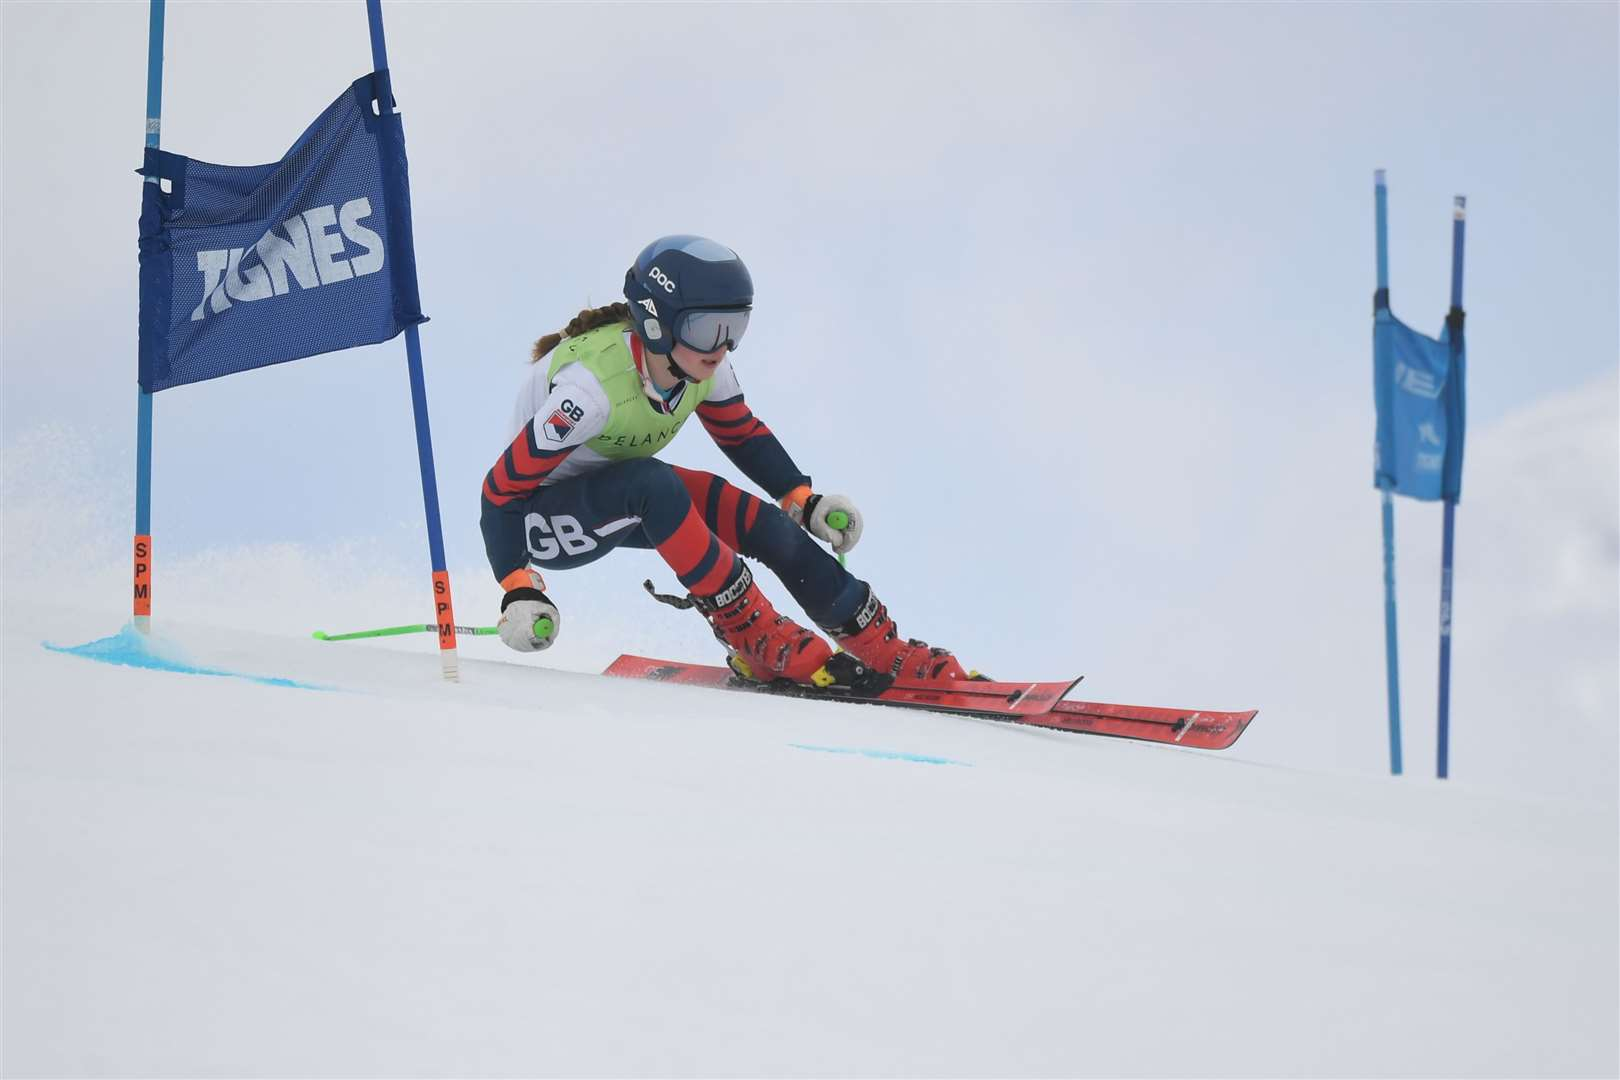 Honor Bartlett in action at the GB Alpine Championships in Tigne, France where she won the Under-14s Super GPicture: SportsBeat (8602559)